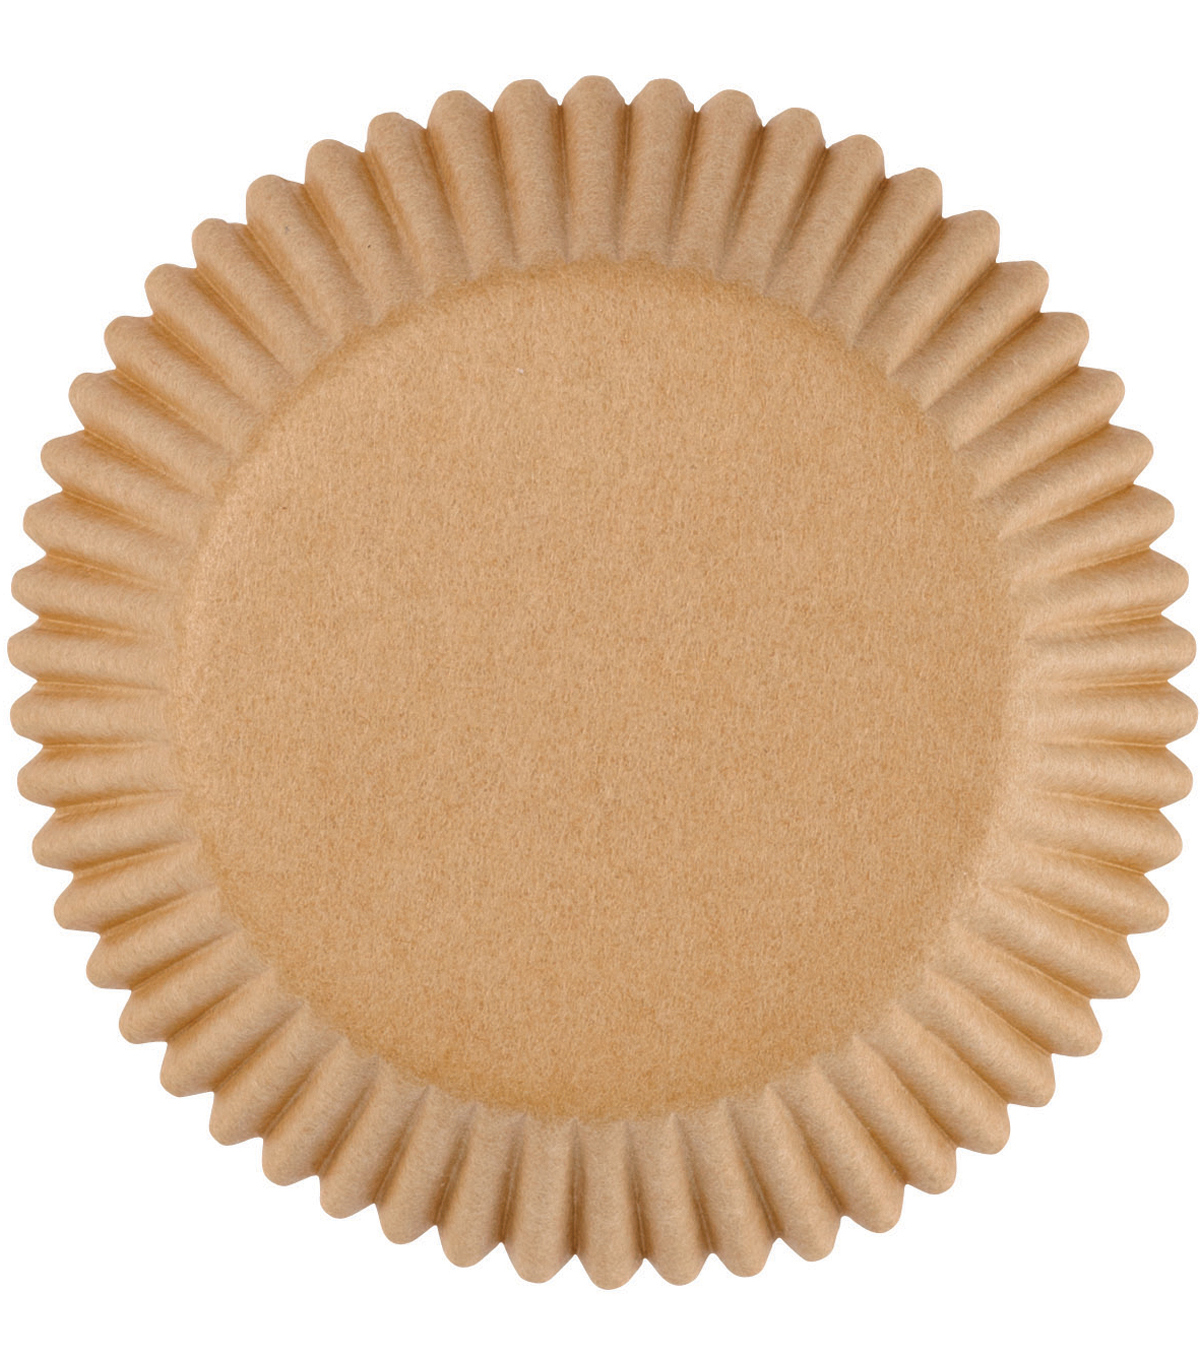 Wilton Standard Baking Cups Unbleached